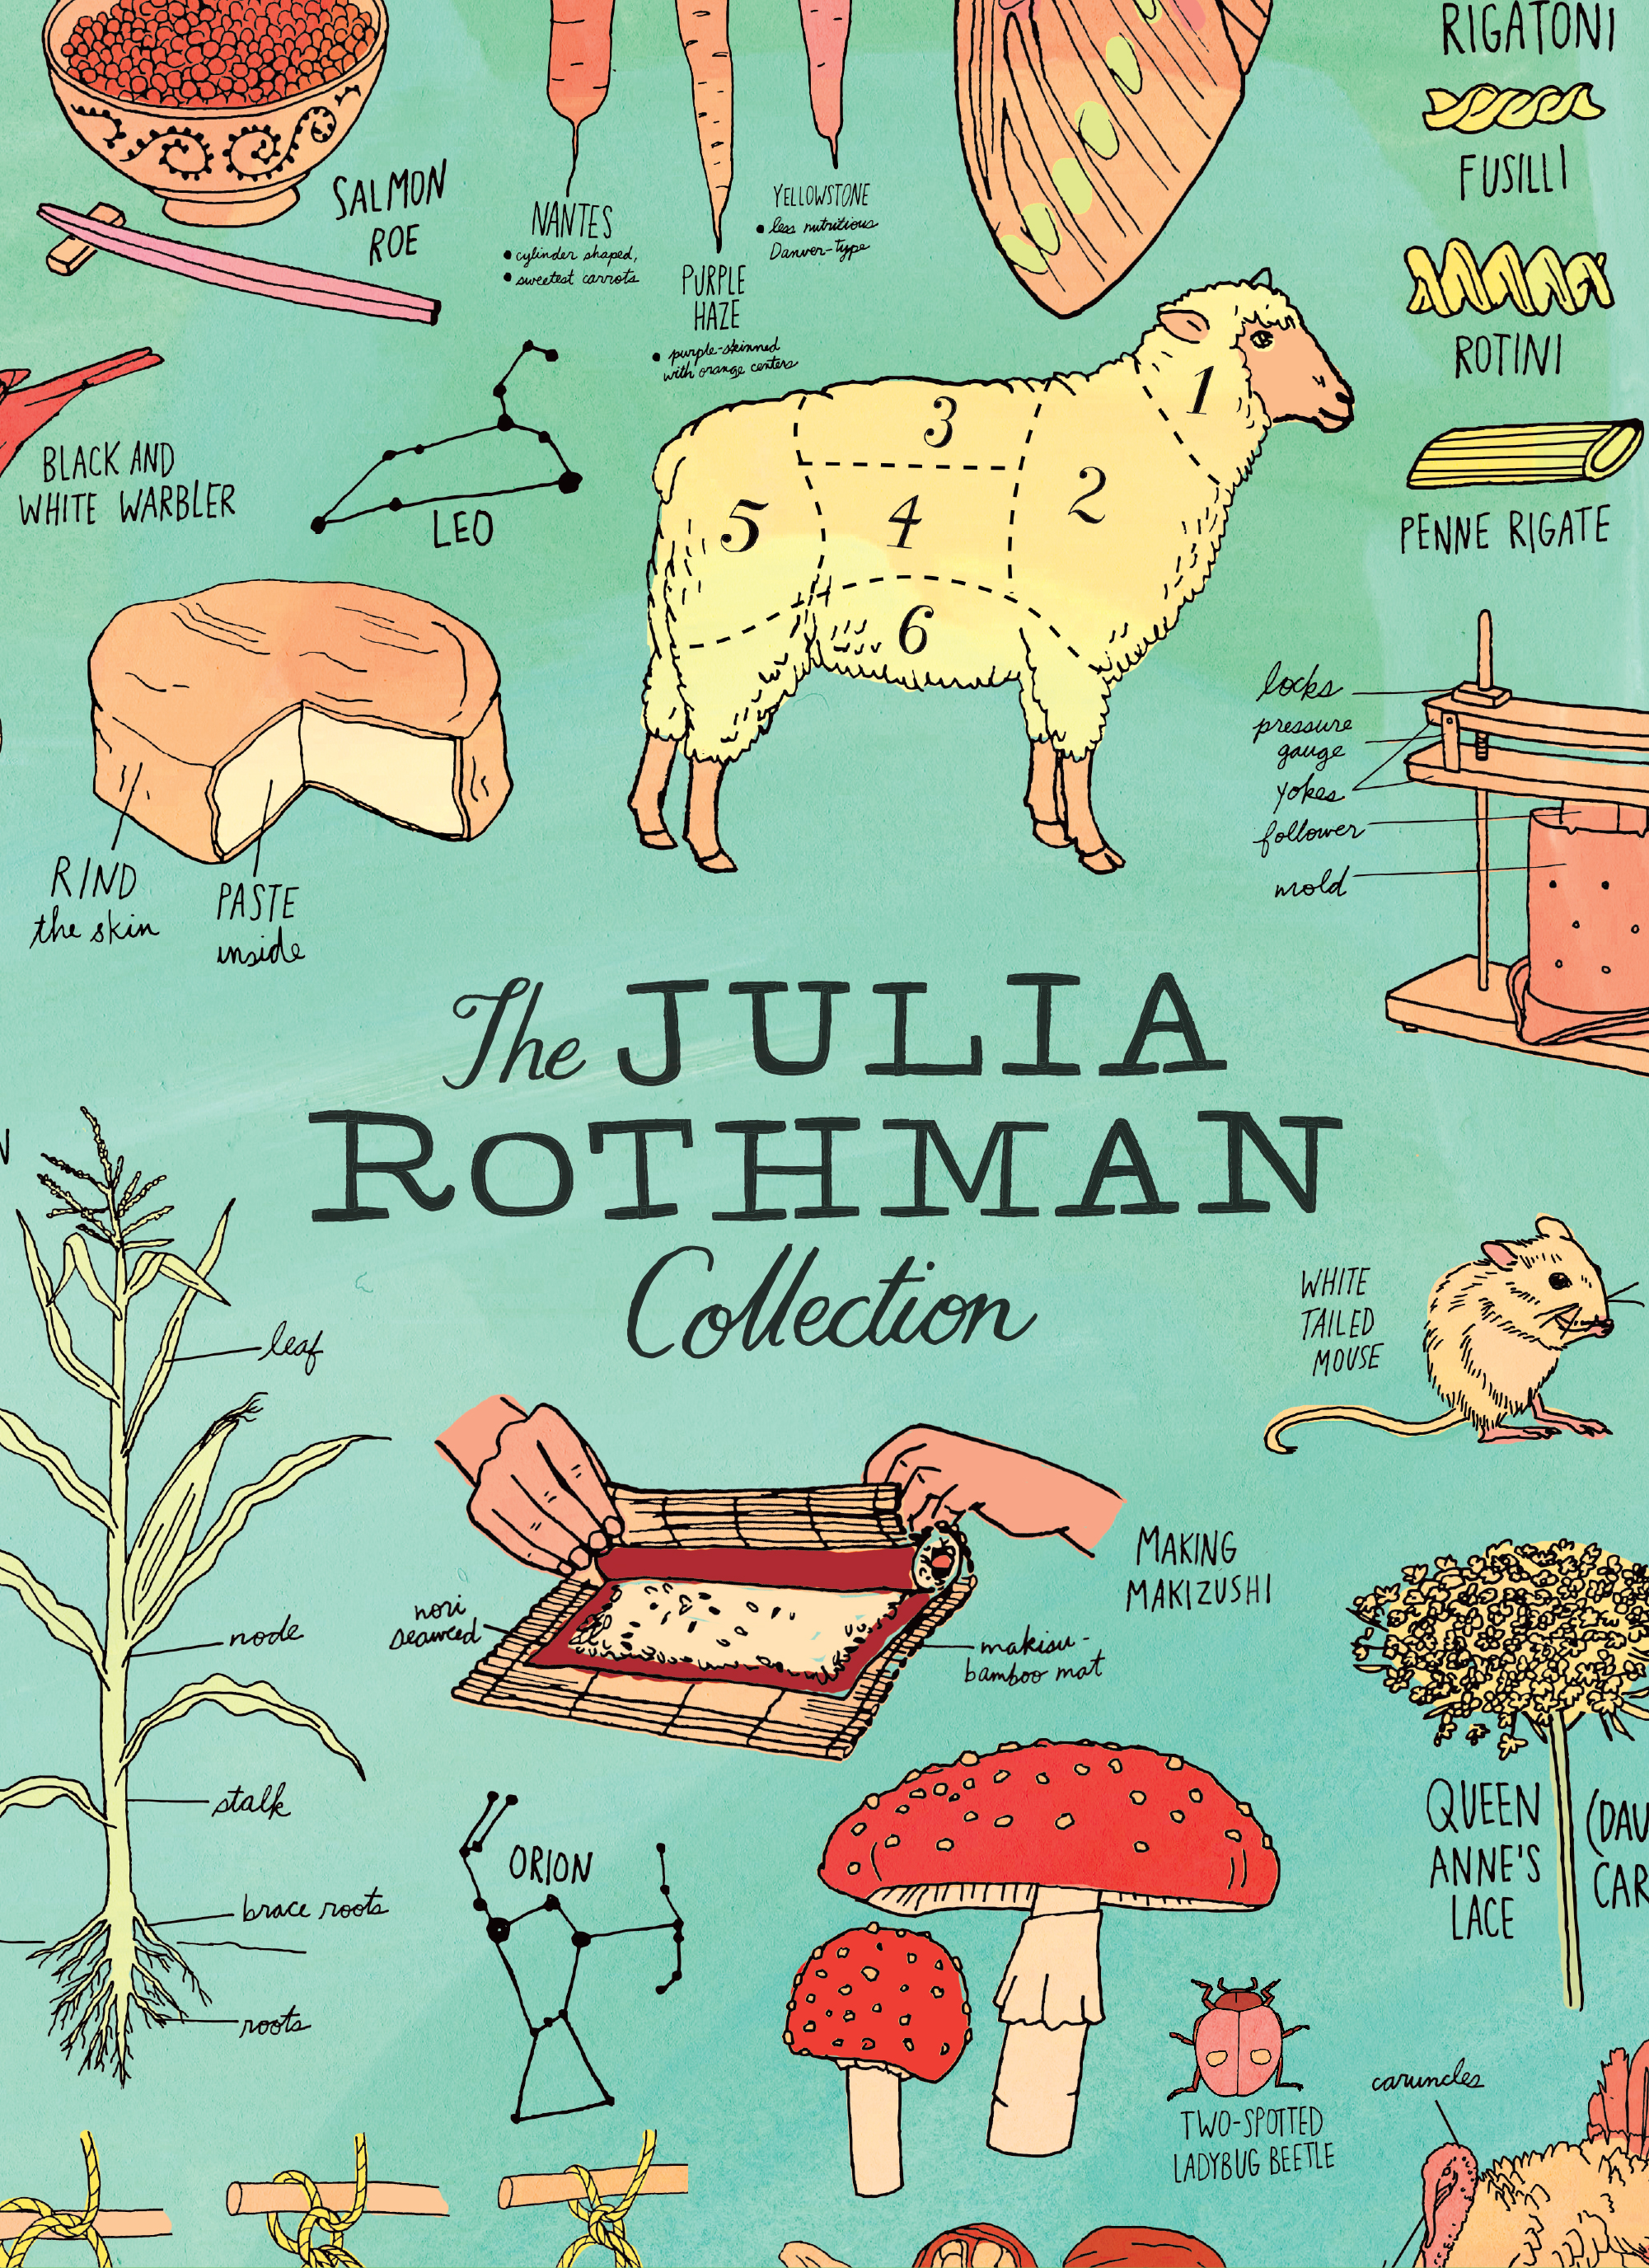 The Julia Rothman Collection Farm Anatomy, Nature Anatomy, and Food Anatomy - Julia Rothman